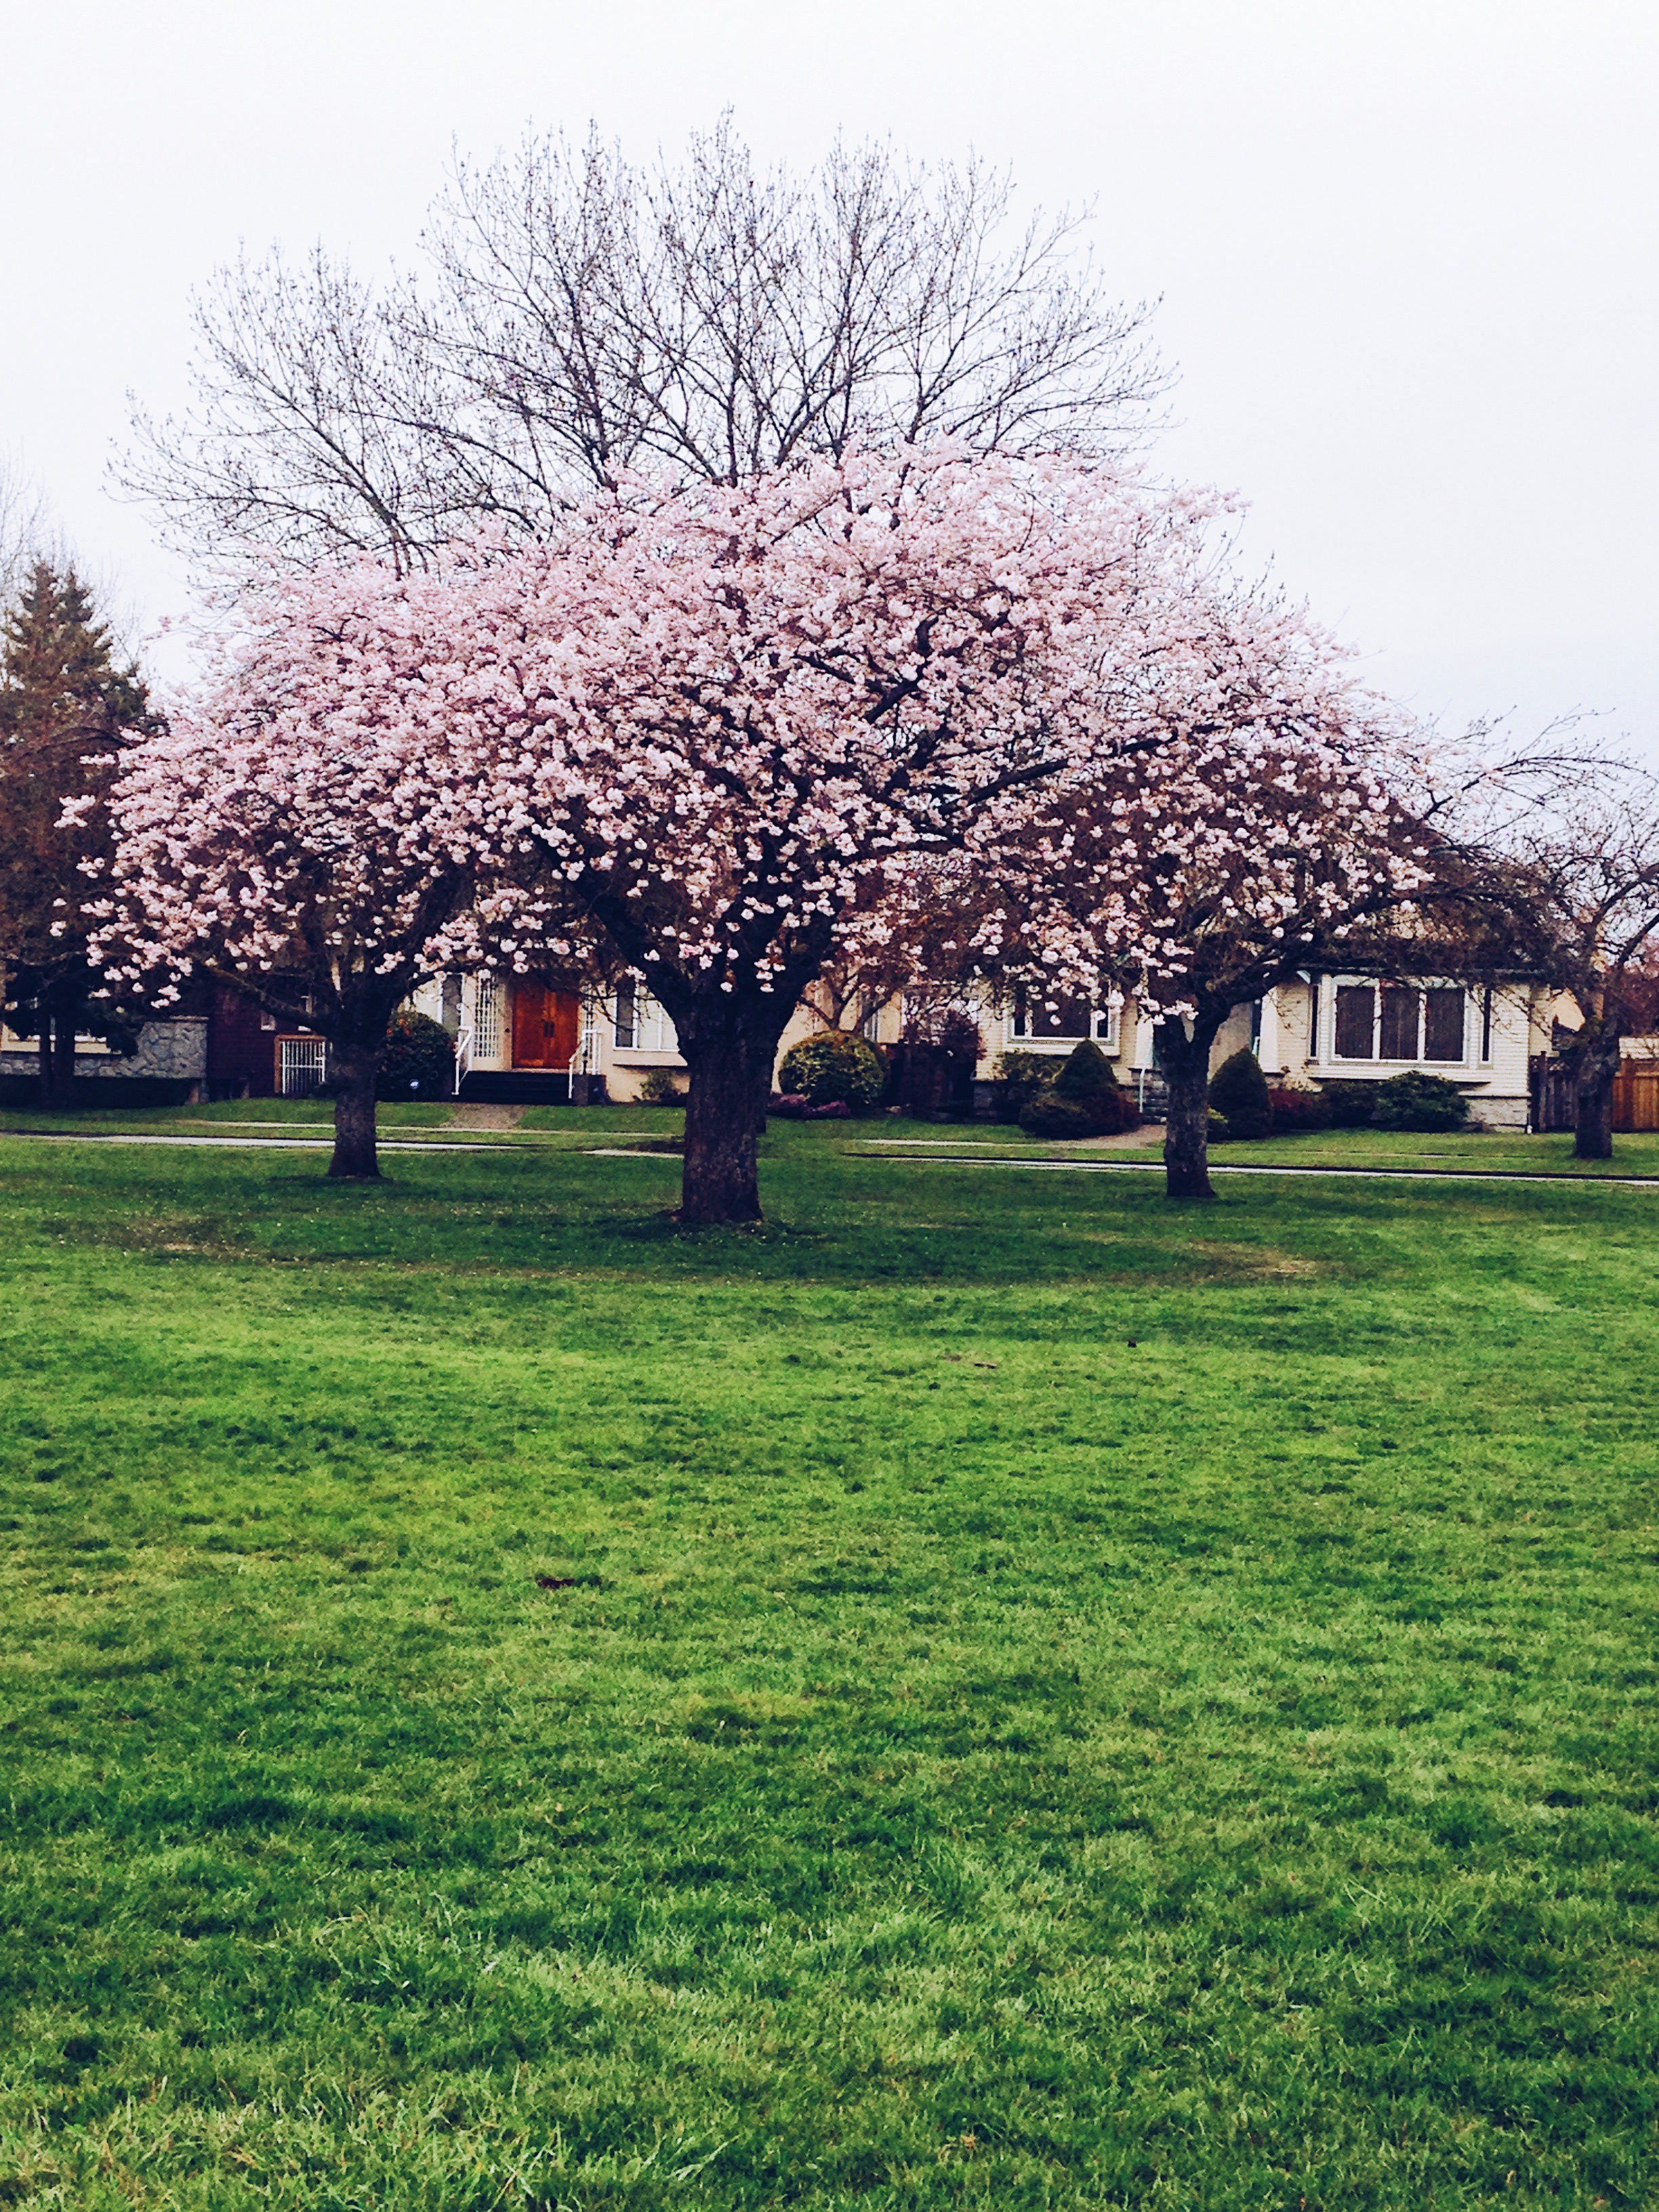 It's Cherry Blossom Season In Vancouver Again